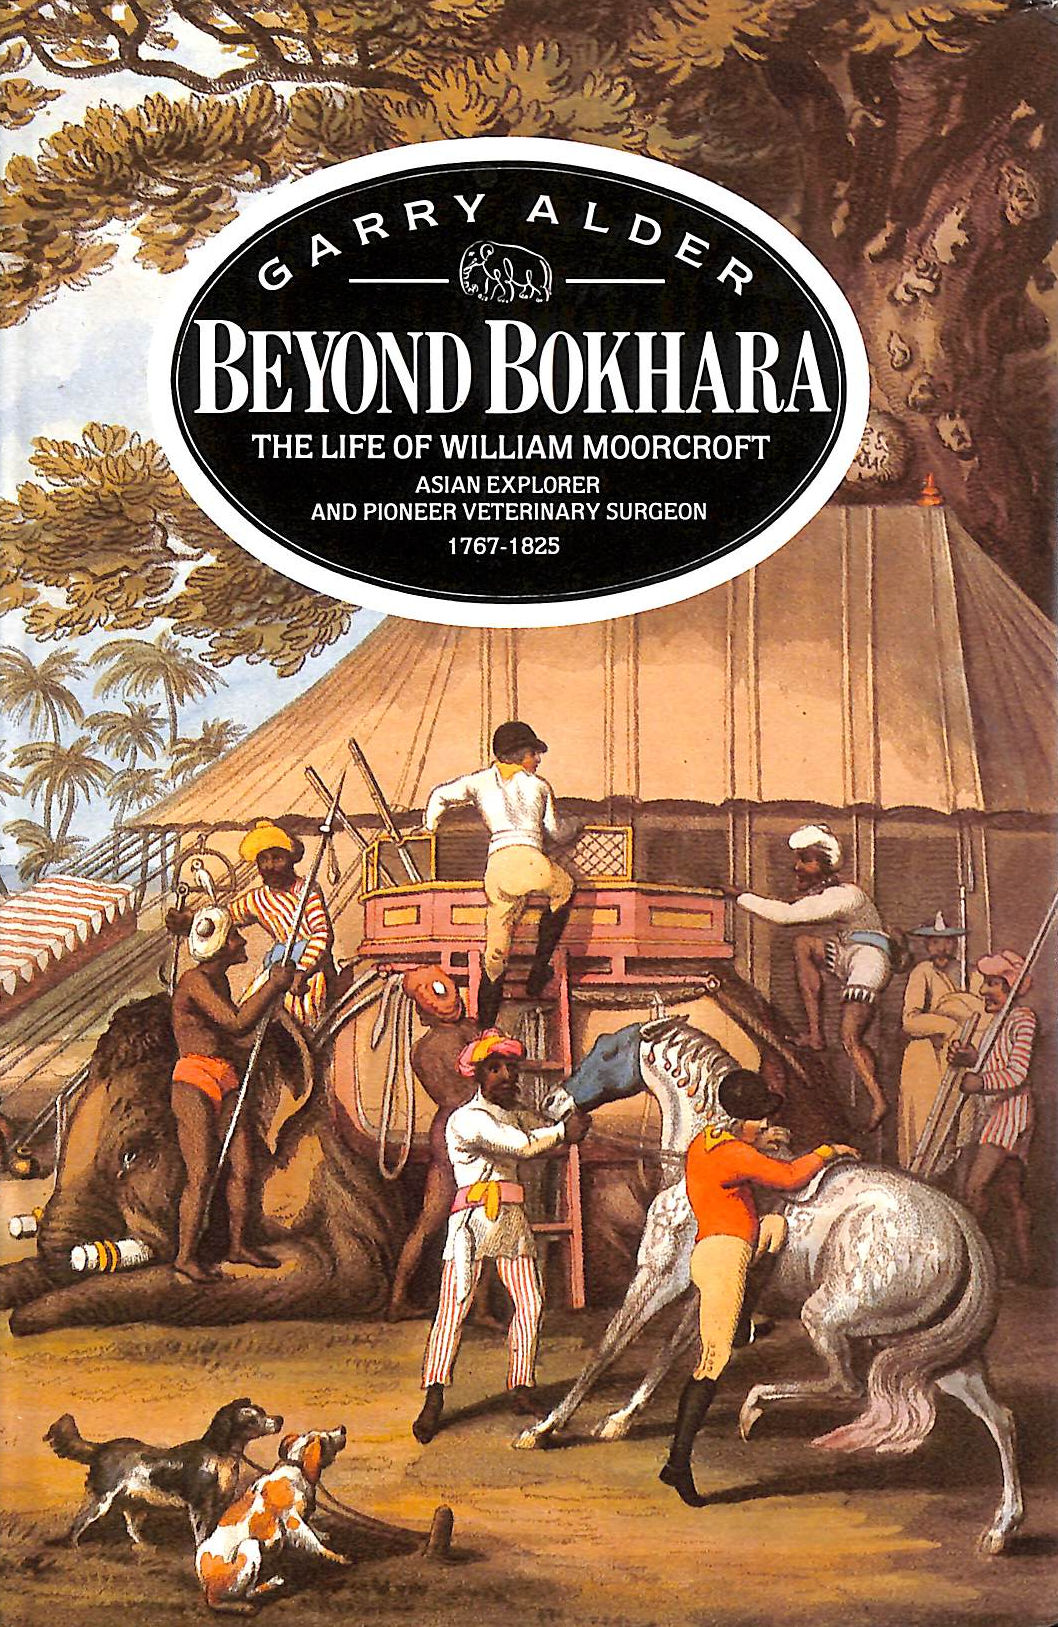 Image for Beyond Bokhara: Life Of William Moorcroft, Asian Explorer And Veterinary Surgeon, 1767-1825